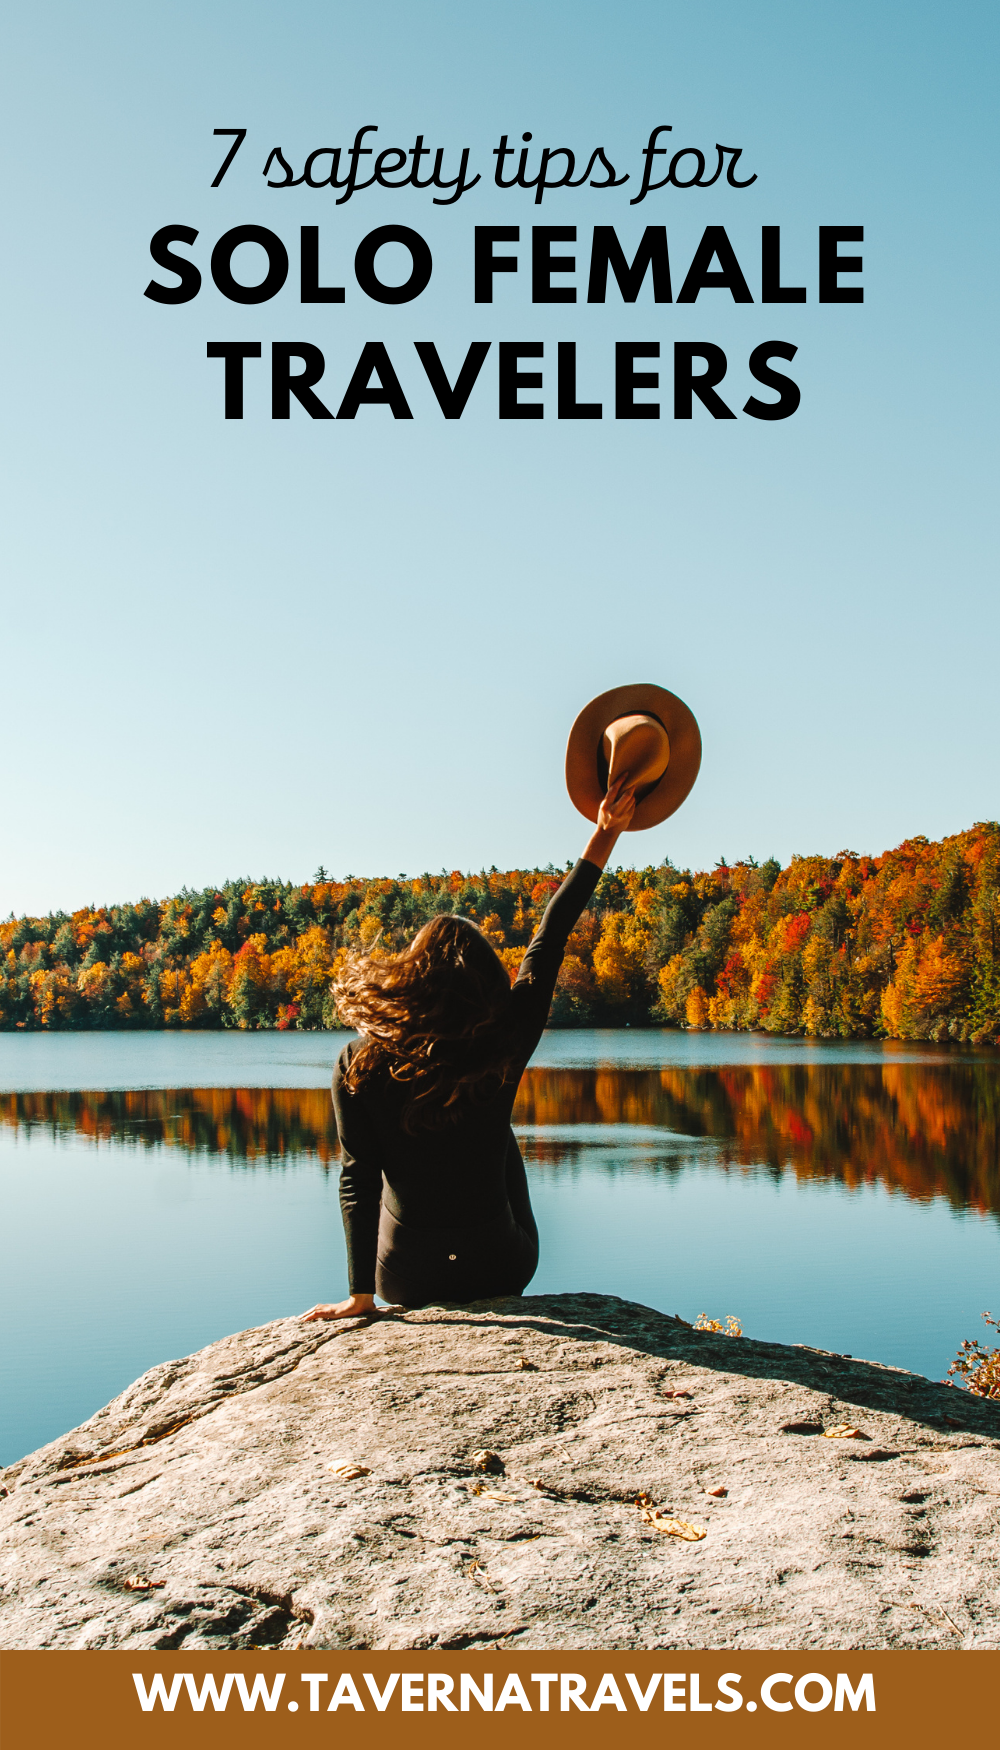 7 Smart Solo Female Traveler Safety Tips pins